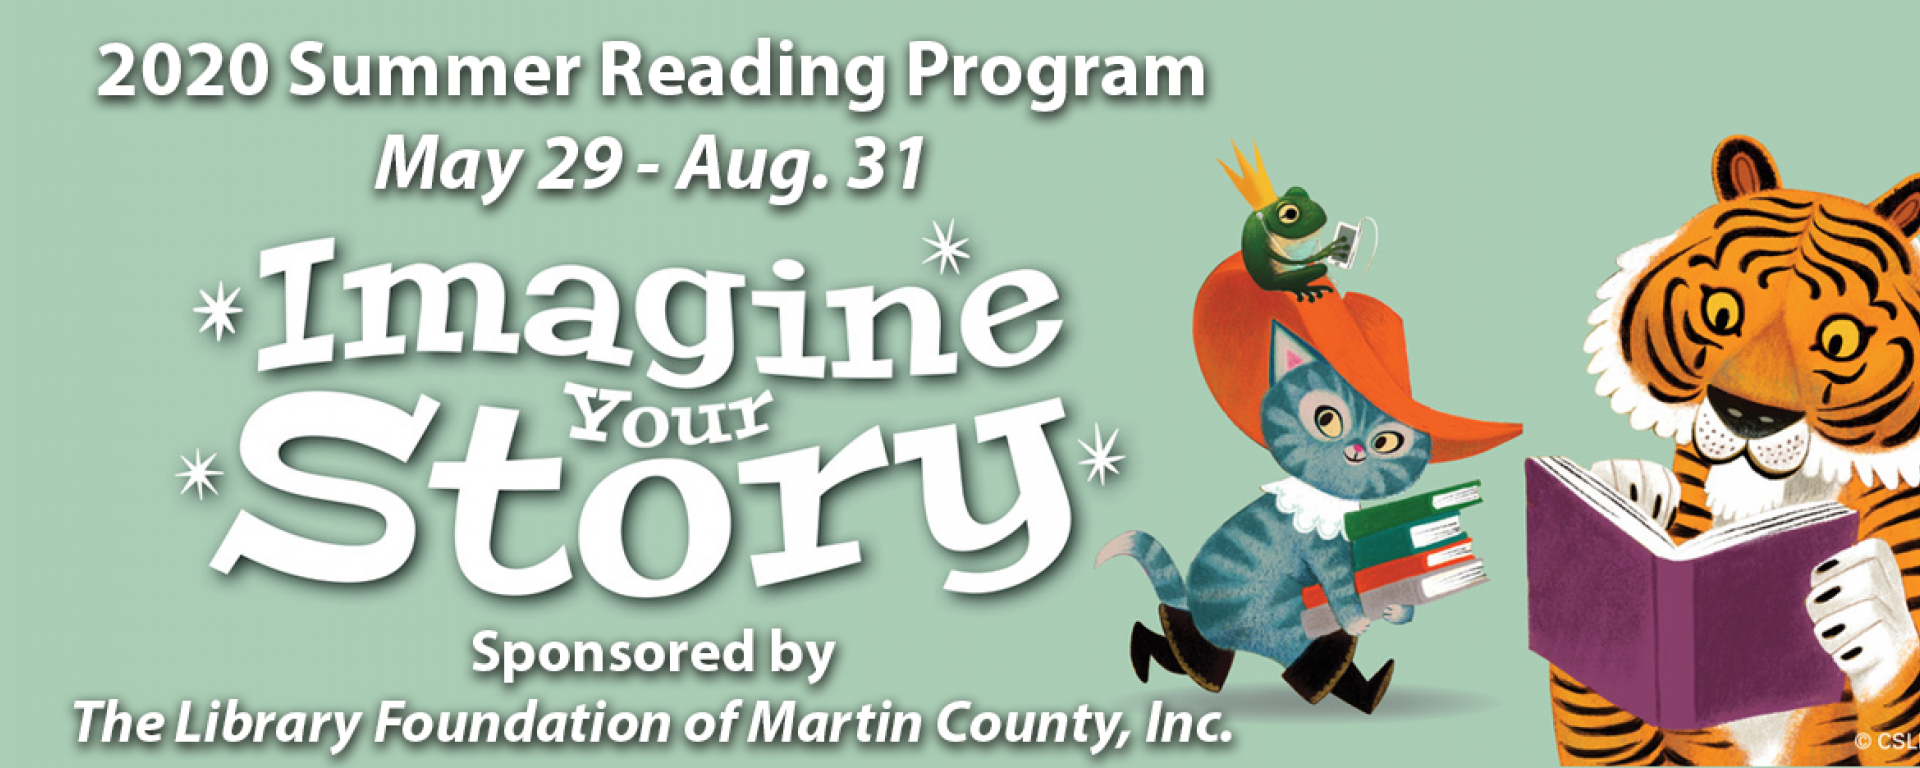 2020 Summer Reading Program: Imagine Your Story May 29 - Aug. 31 Sponsored by The Library Foundation of Martin County, Inc.